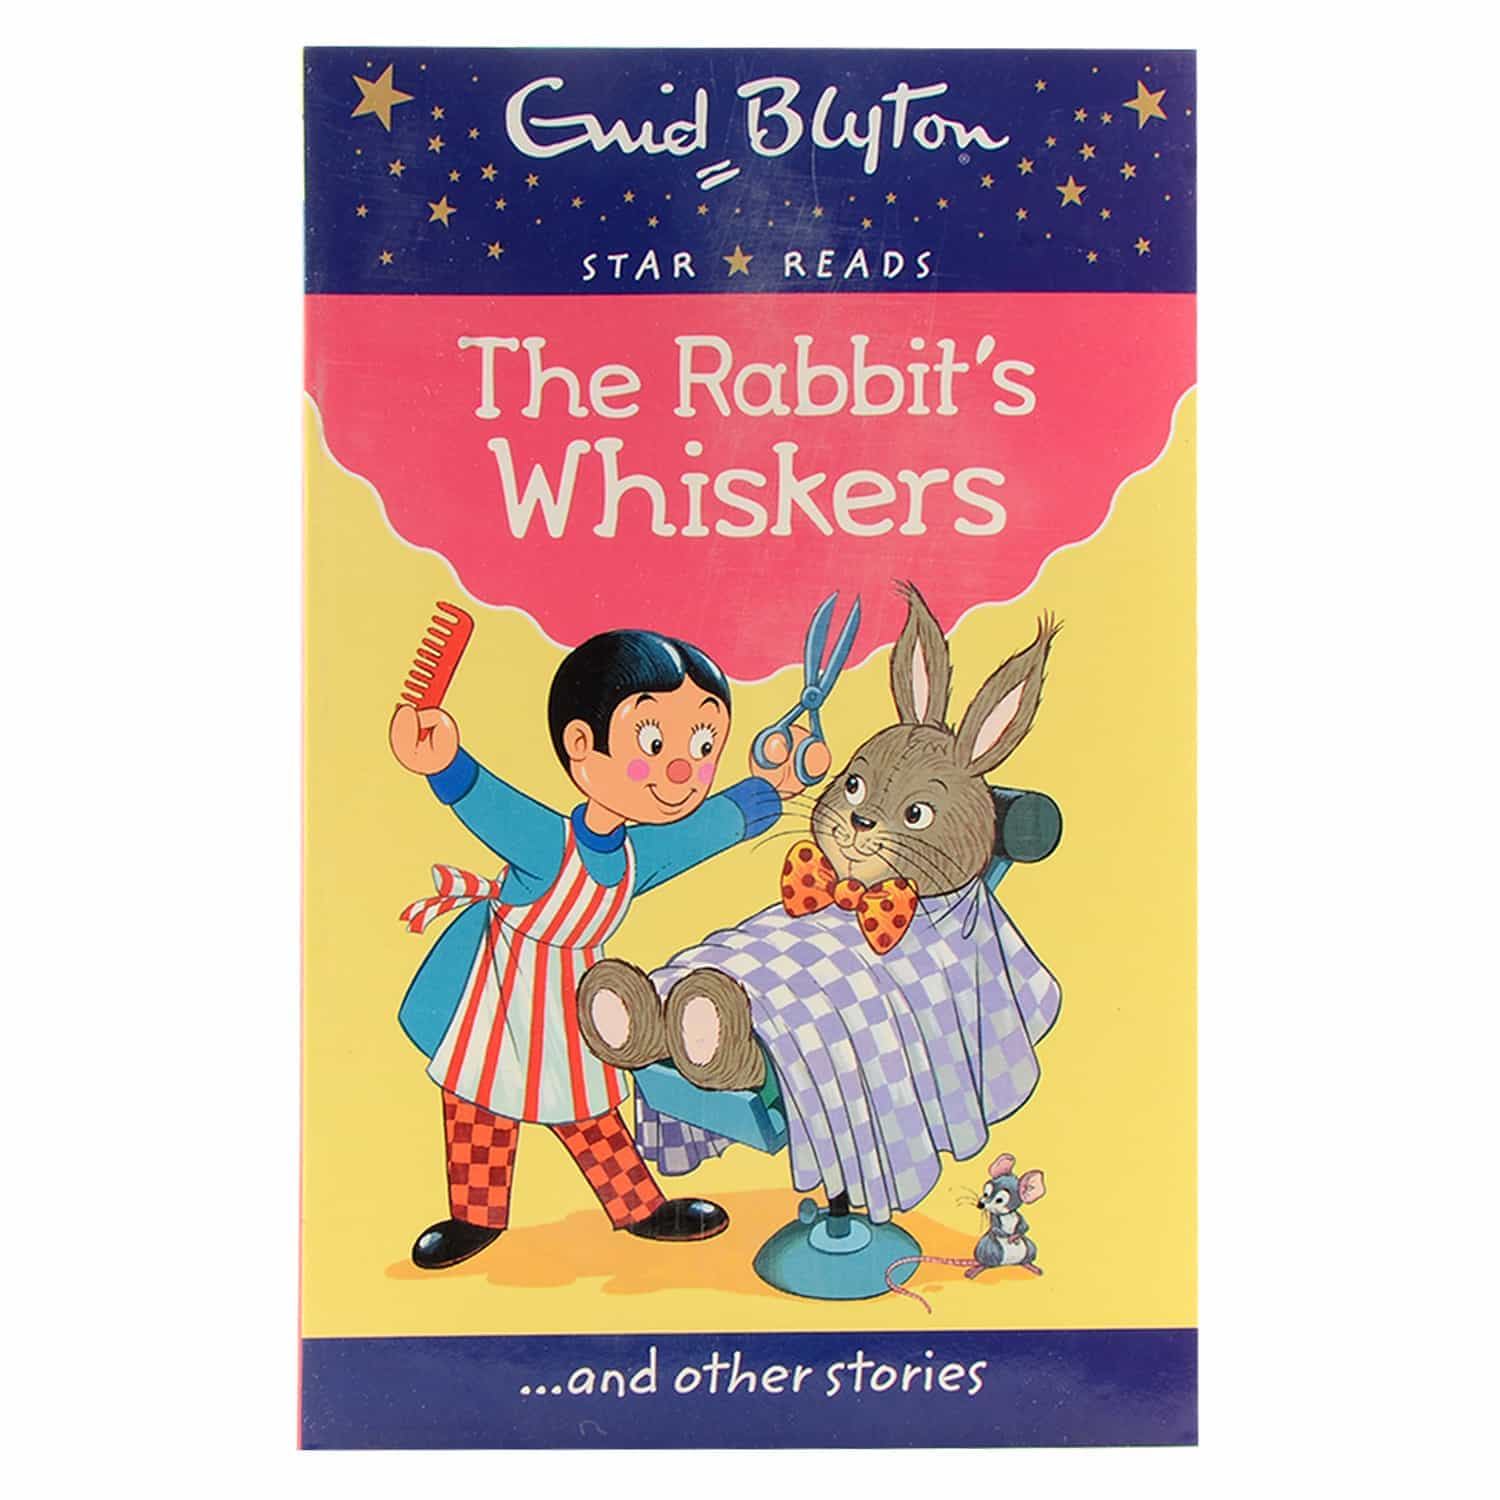 Enid Blyton - The Rabbit's Whiskers and Other Stories